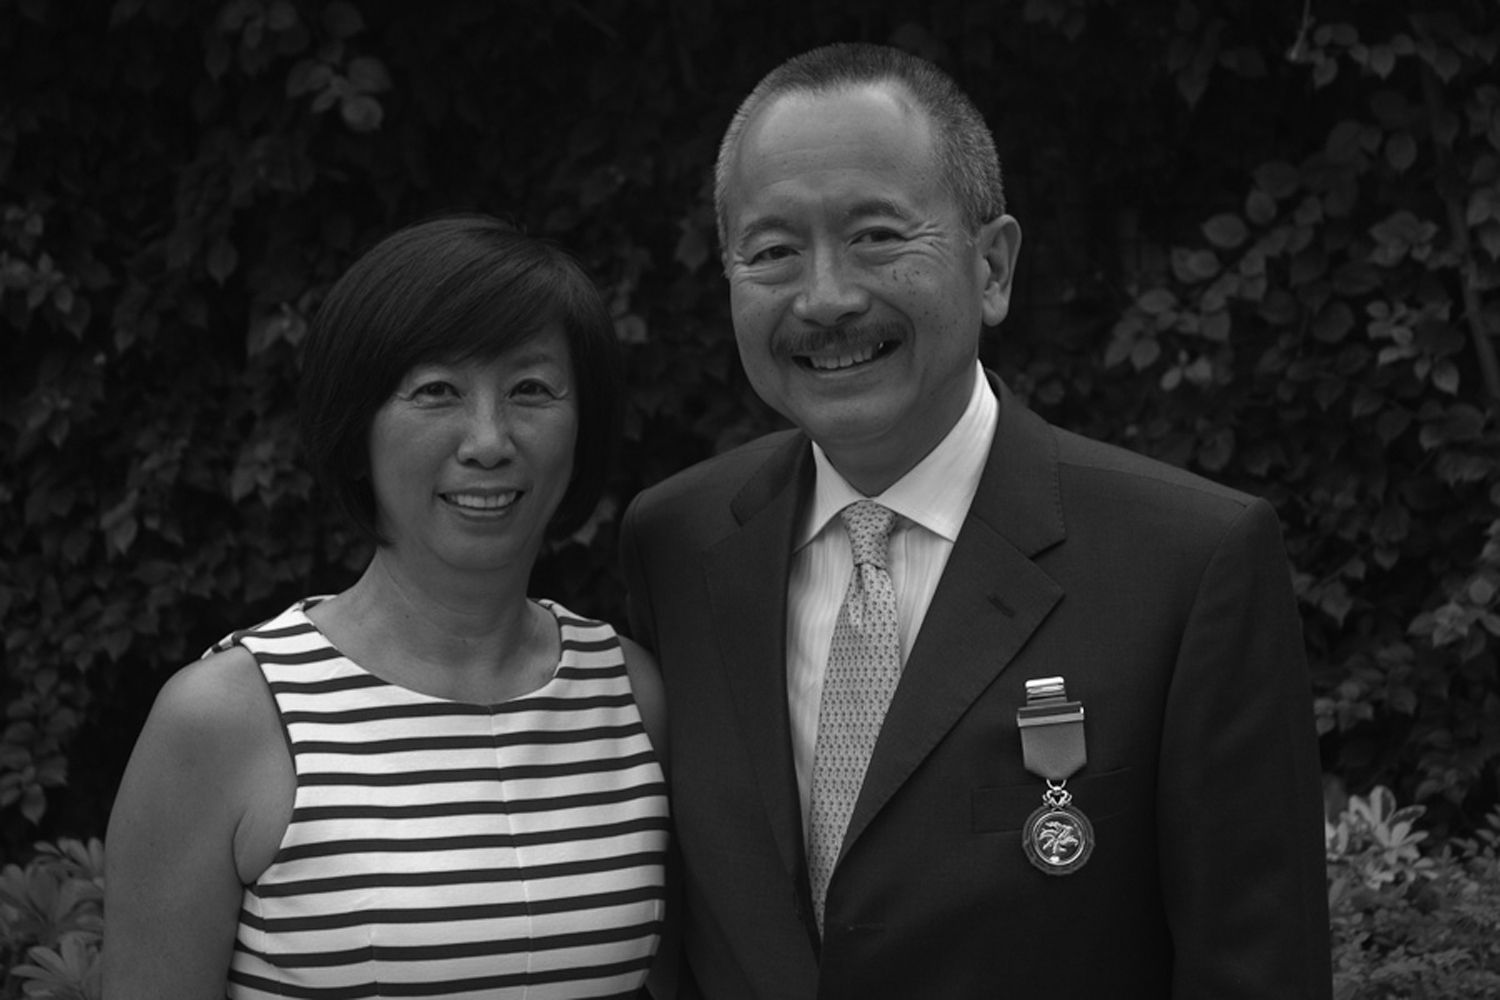 Karl Kwok '71 was given a Medal of Honor by the Hong Kong